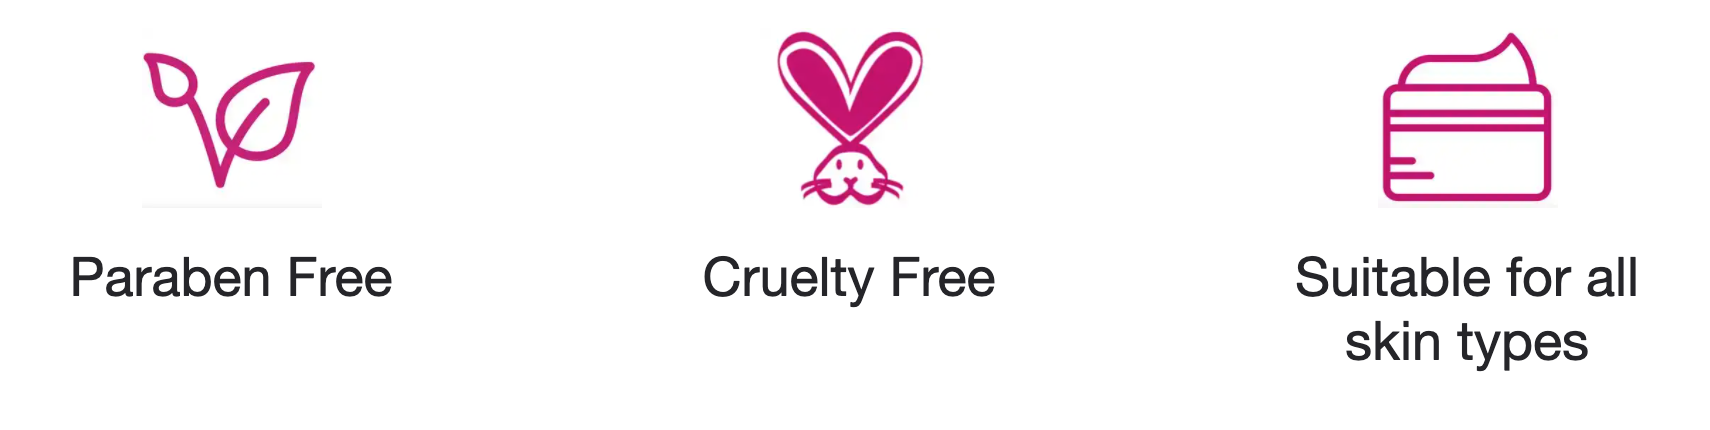 Paraben Free Cruelty Free Suitable for all skin types